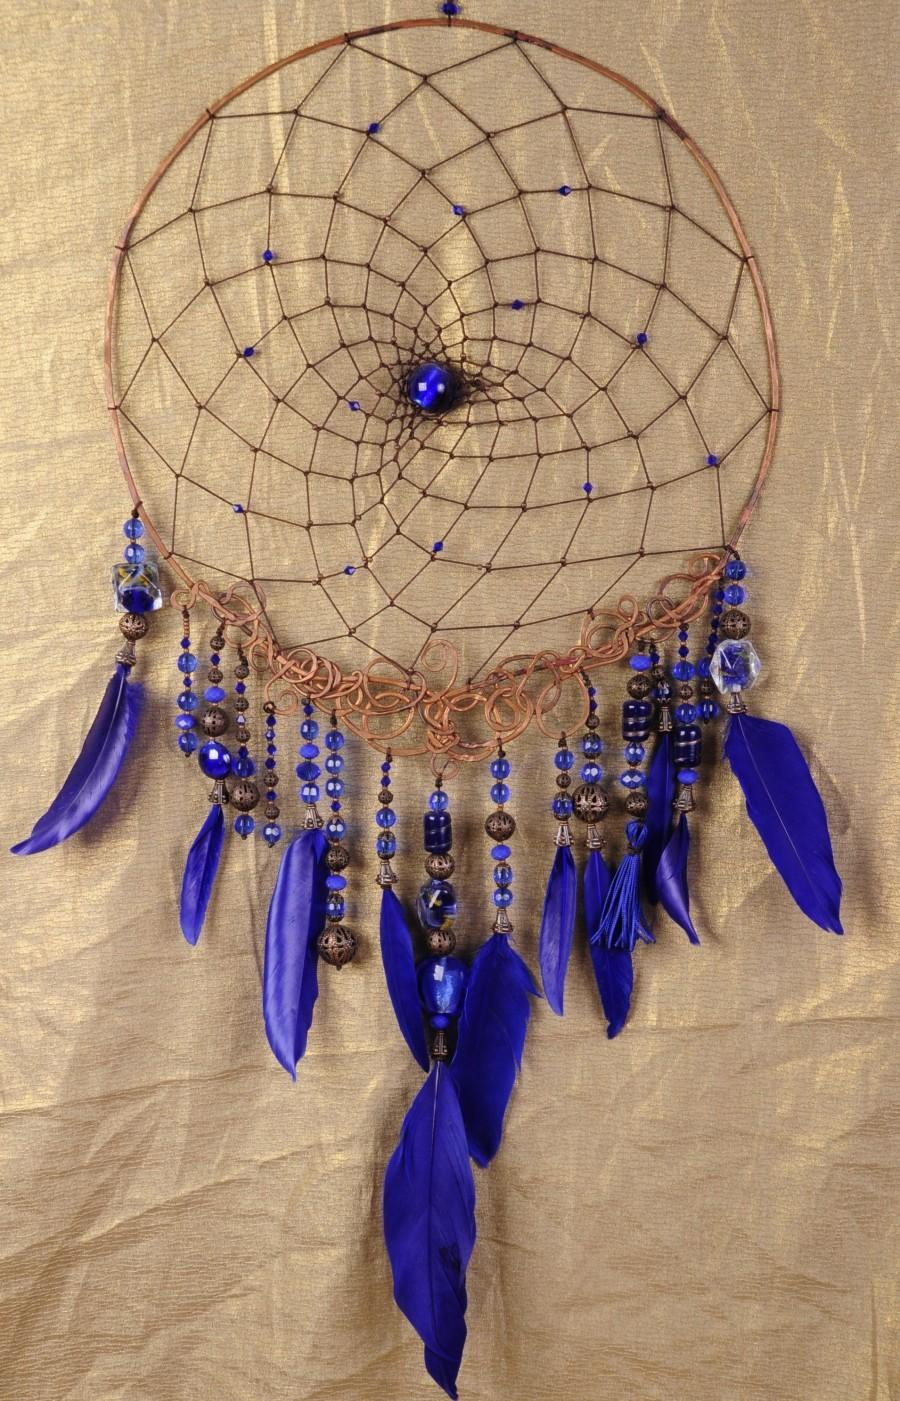 Dream catcher royal blue dreamcatcher copper dream atcher dream catcher royal blue dreamcatcher copper dream atcher dreamcatchers boho dreamcatchers wall decor handmade decoration idea gift idea amipublicfo Images